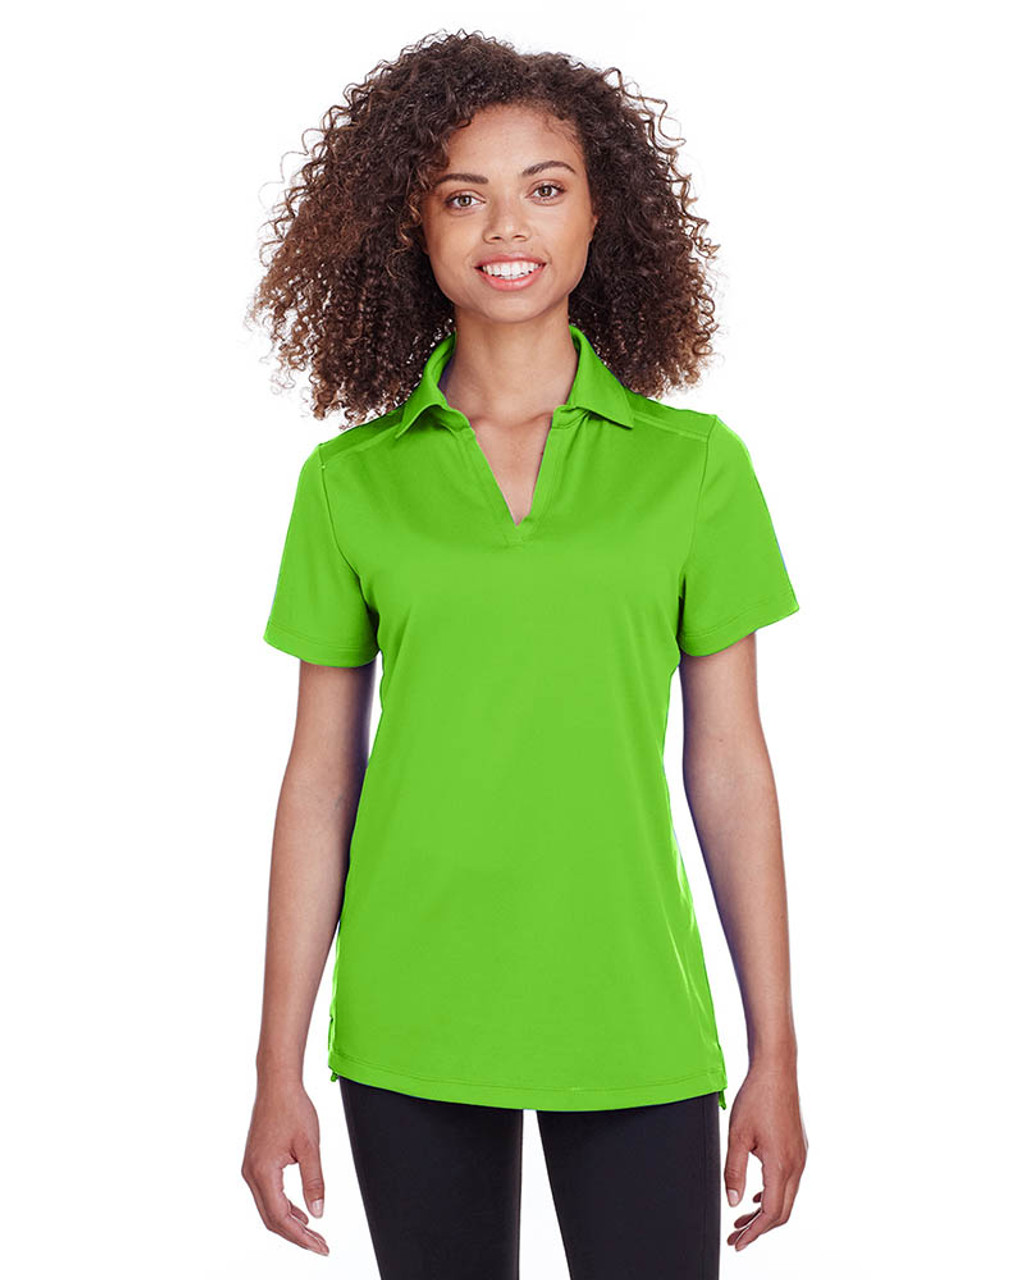 Lime - S16519 Spyder Ladies' Freestyle Polo | BlankClothing.ca